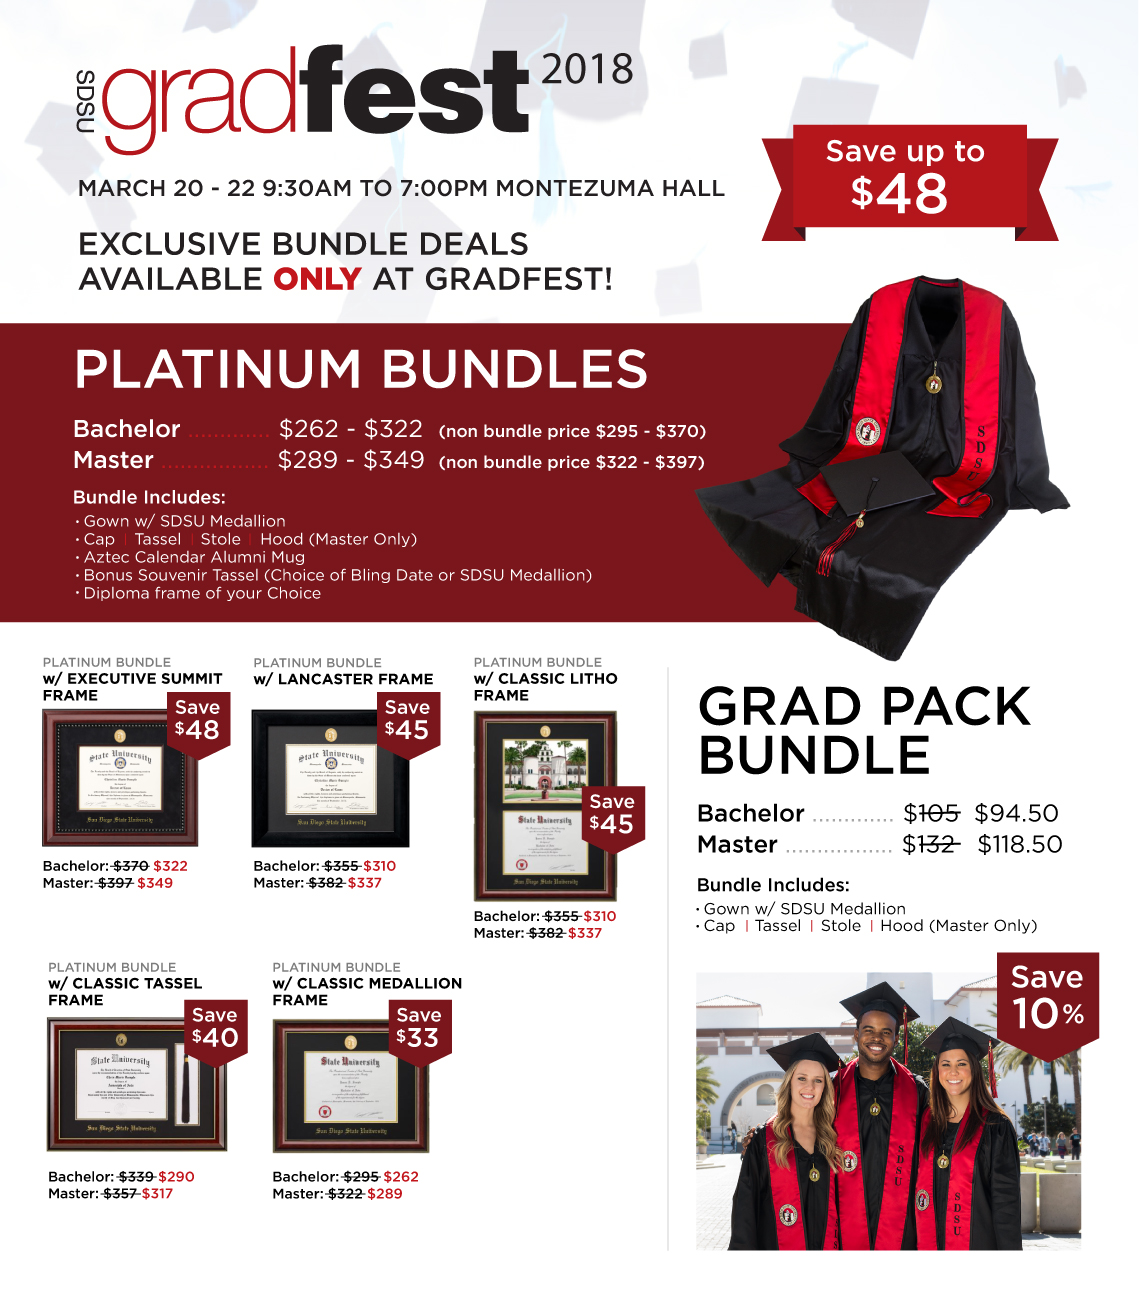 SDSU Gradfest 2018. March 20 -22, 9:30 A.M. to 7:00 P.M. at Montezuma Hall. Exclusive bundle deals available only at Gradfest!